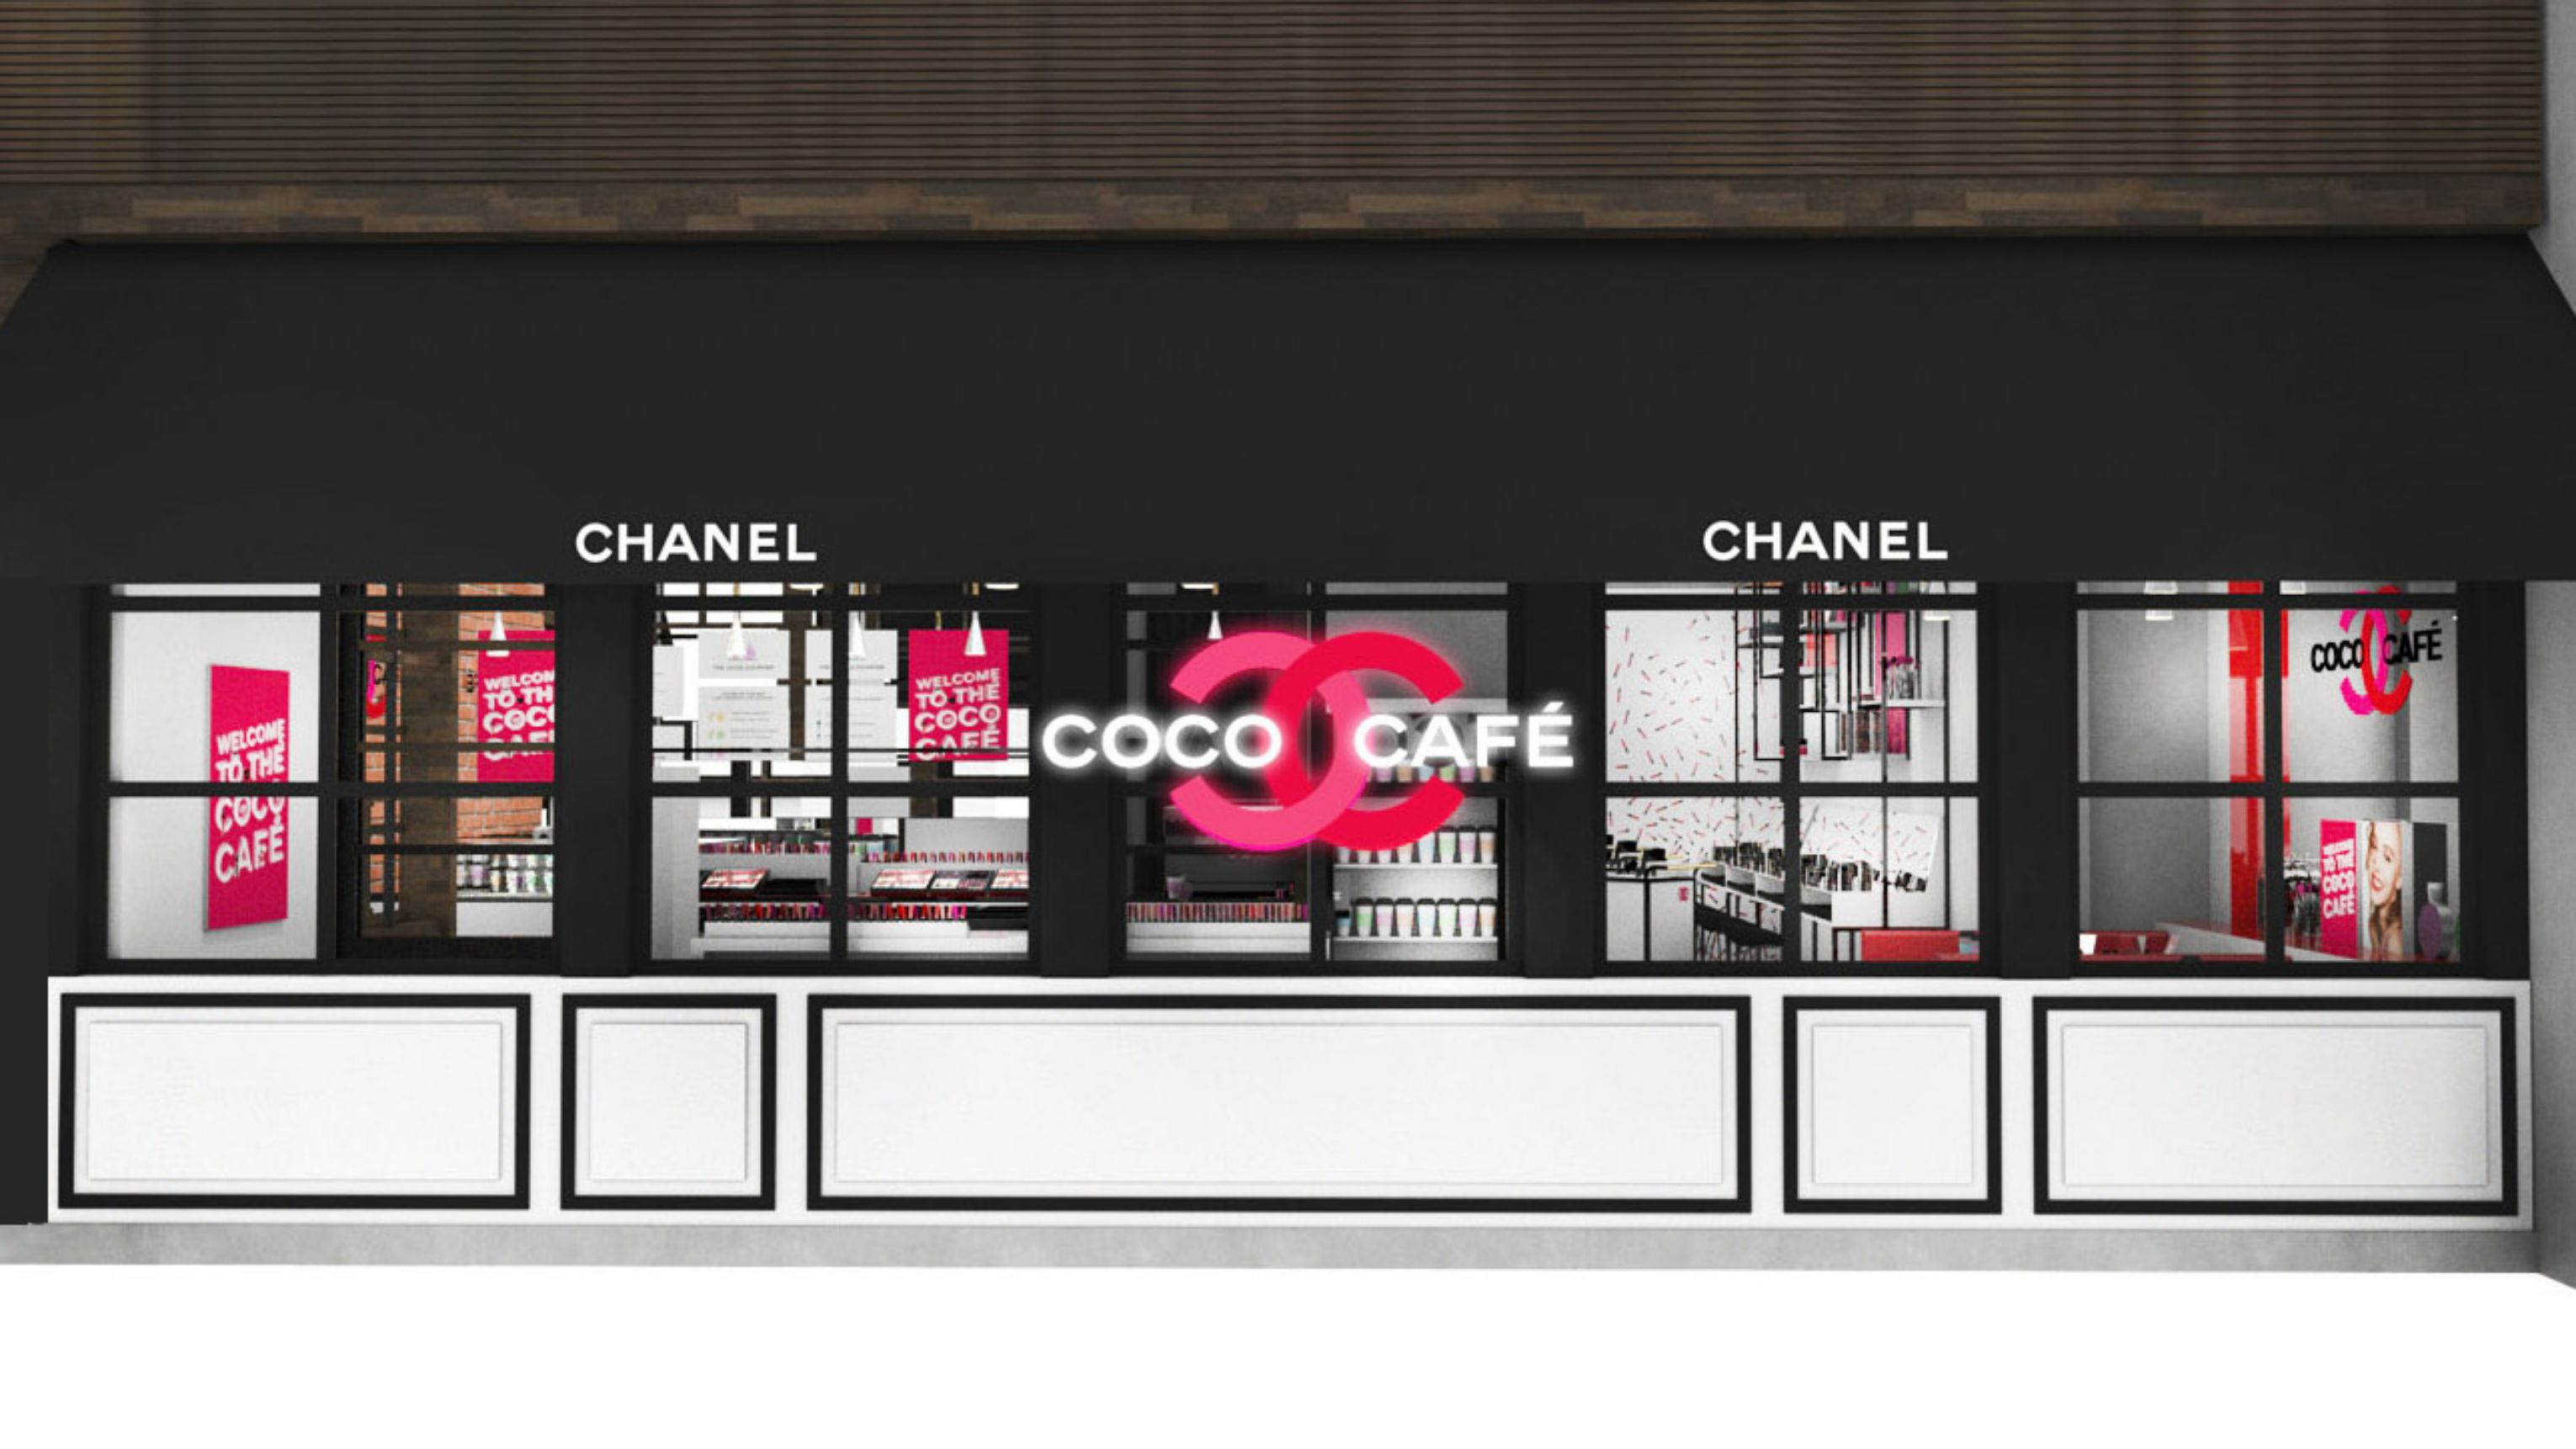 Chanel fans should sign up now for the Coco Café pop-up this June